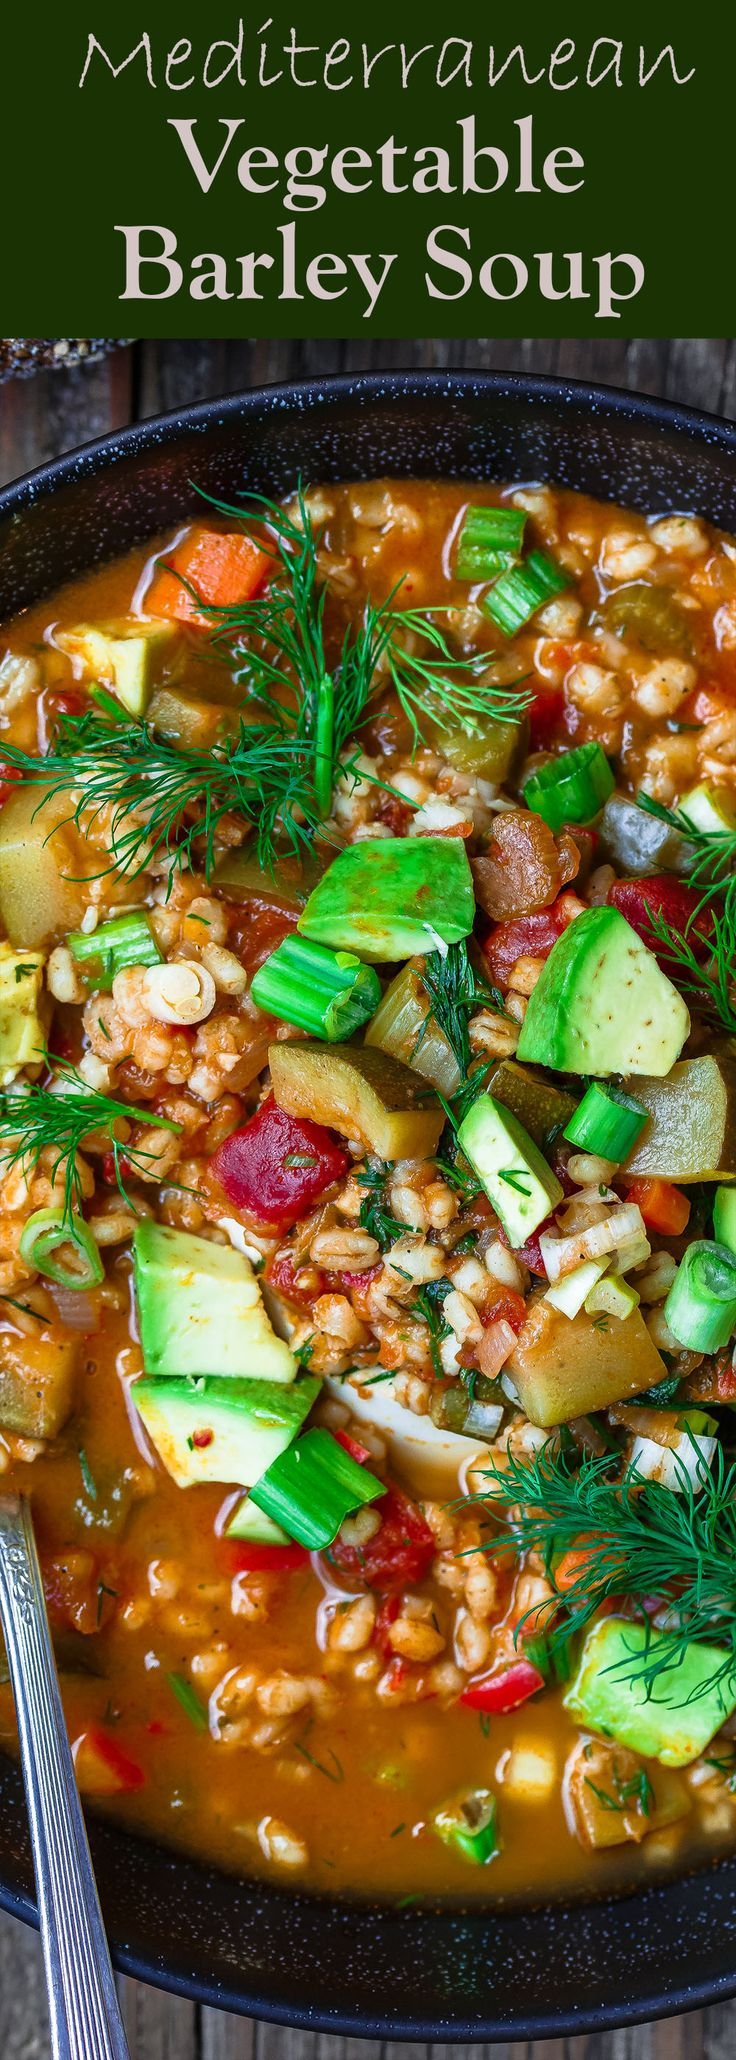 Chunky Vegetable Barley Soup, Prepared Mediterranean-Style! A satisfying, healthy, and warm-your-belly barley soup!  Tons of texture and flavor. Don't skip the lemon juice and fresh herbs!  #soup #souprecipes #barley #grains #vegetarian #vegetarianrecipes #mediterraneandiet #mediterranean